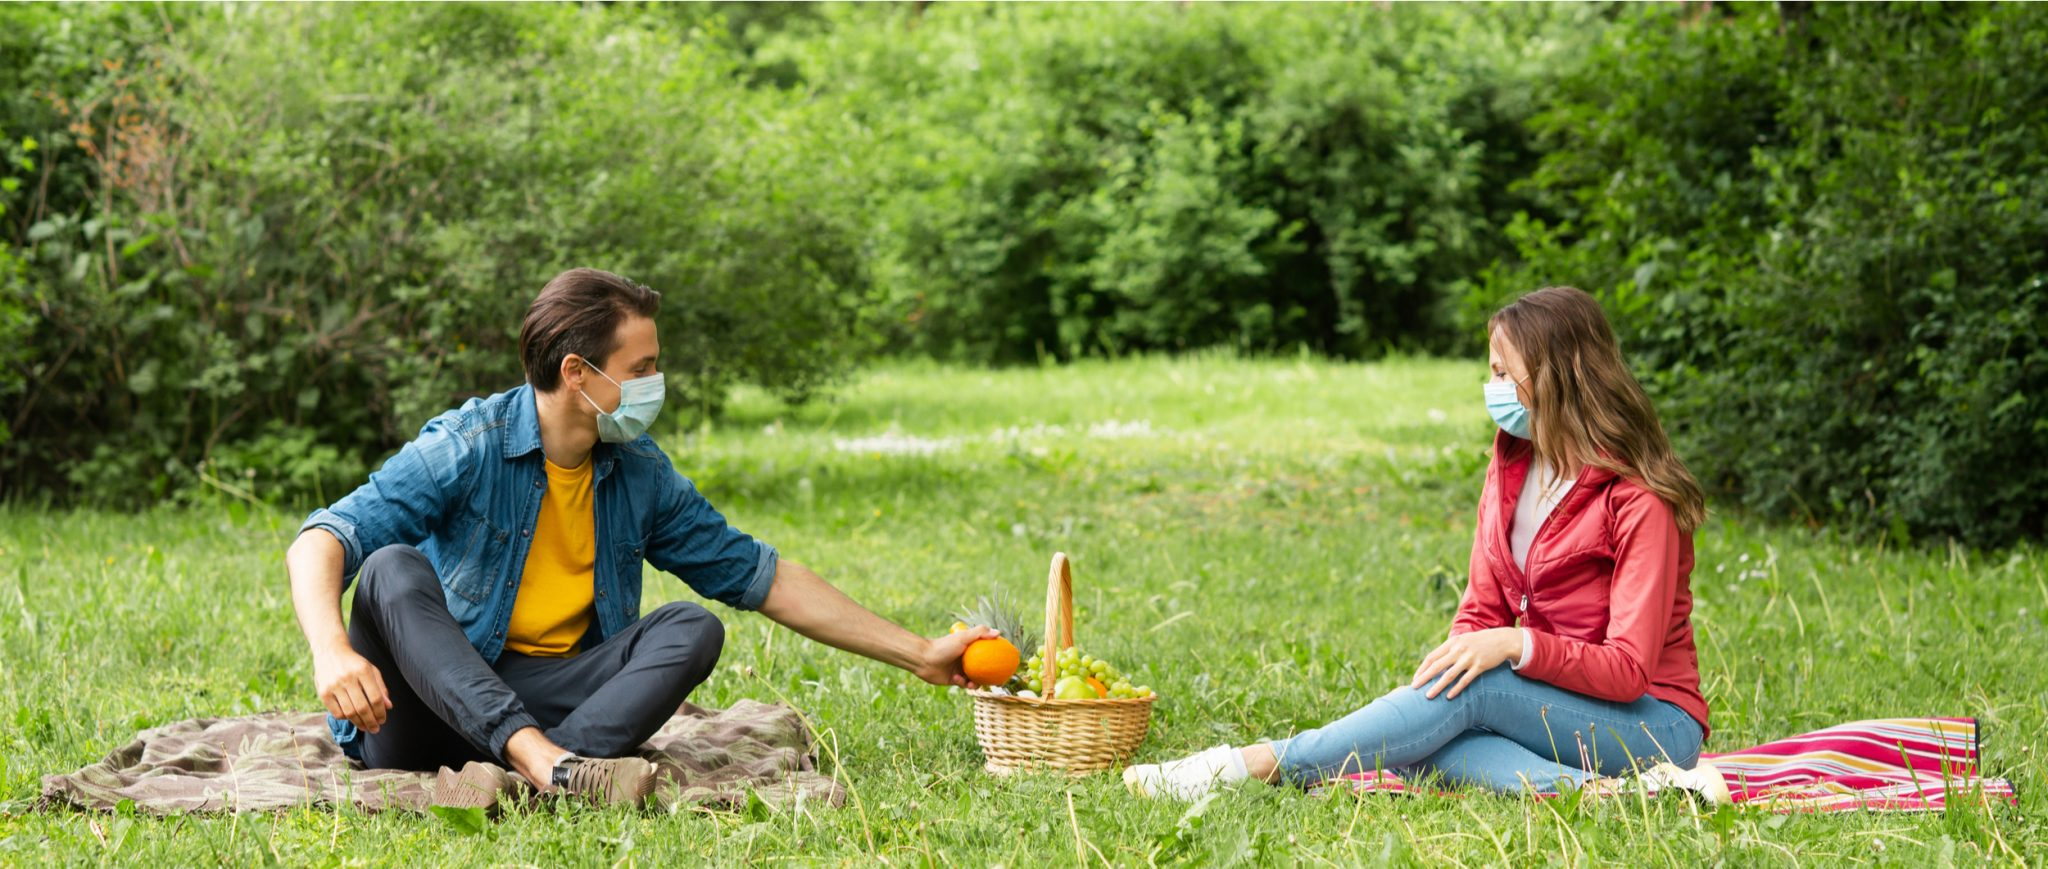 Romantic picnic ideas suggestions